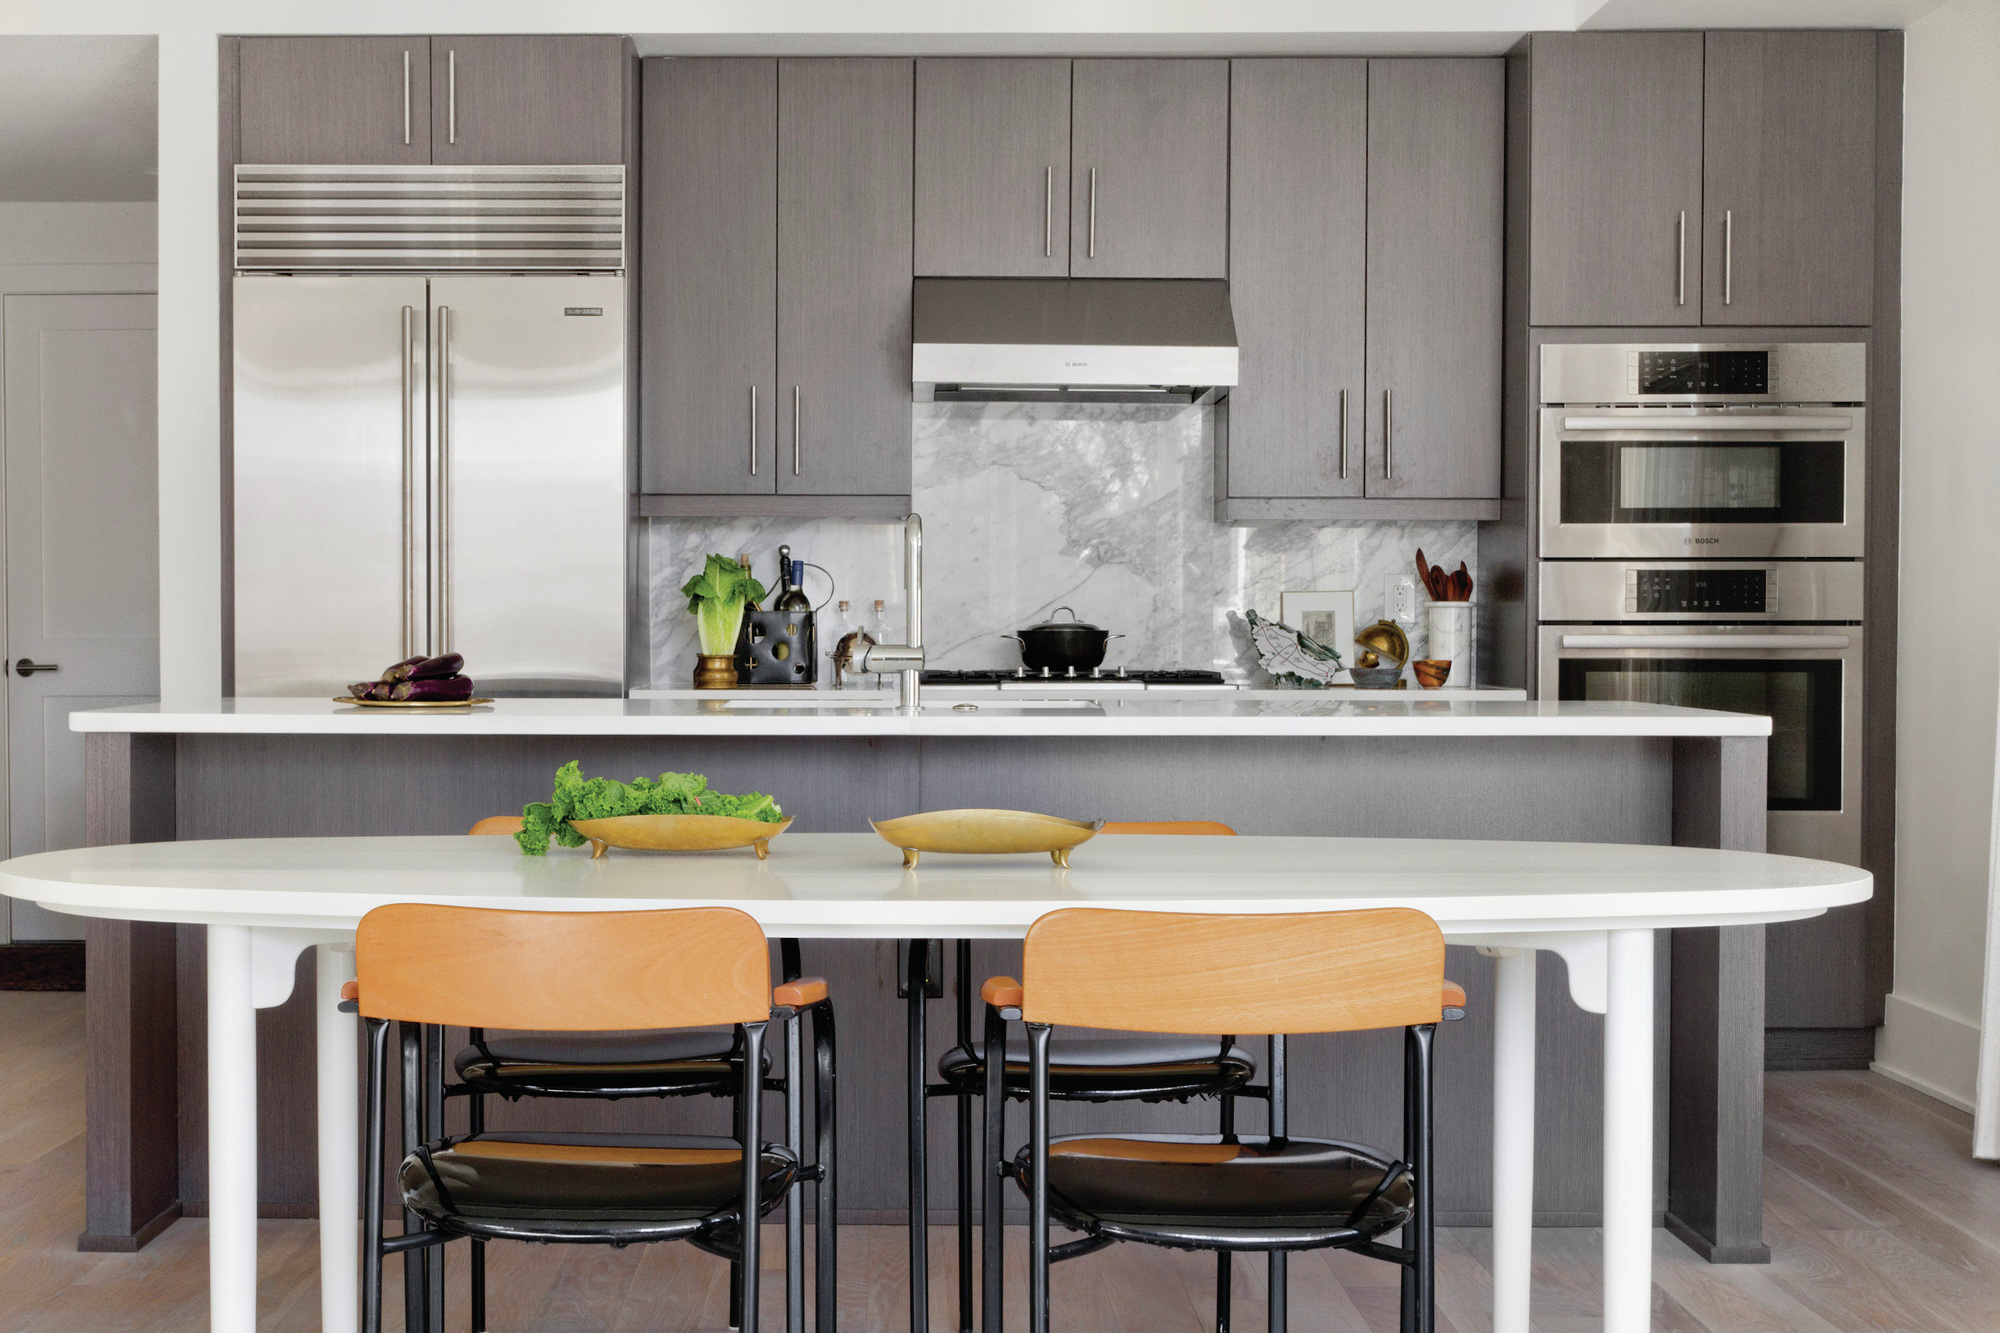 Houzz Kitchen Trends Survey Links New Kitchens To